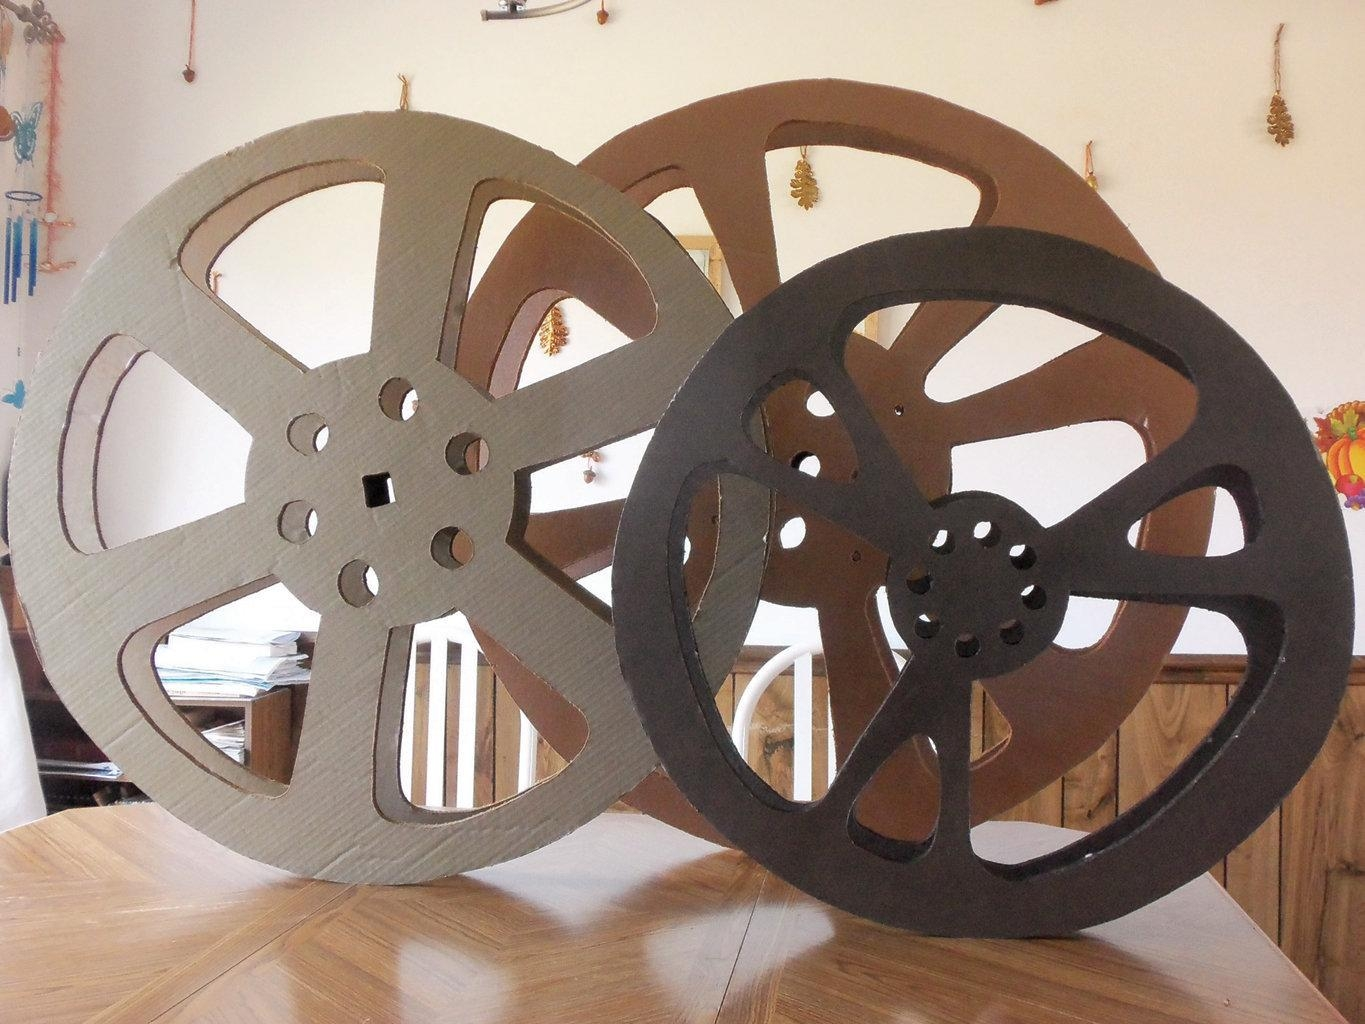 Diy Project: Film Reel Wall Decoration | Mlive For Film Reel Wall Art (Image 8 of 20)